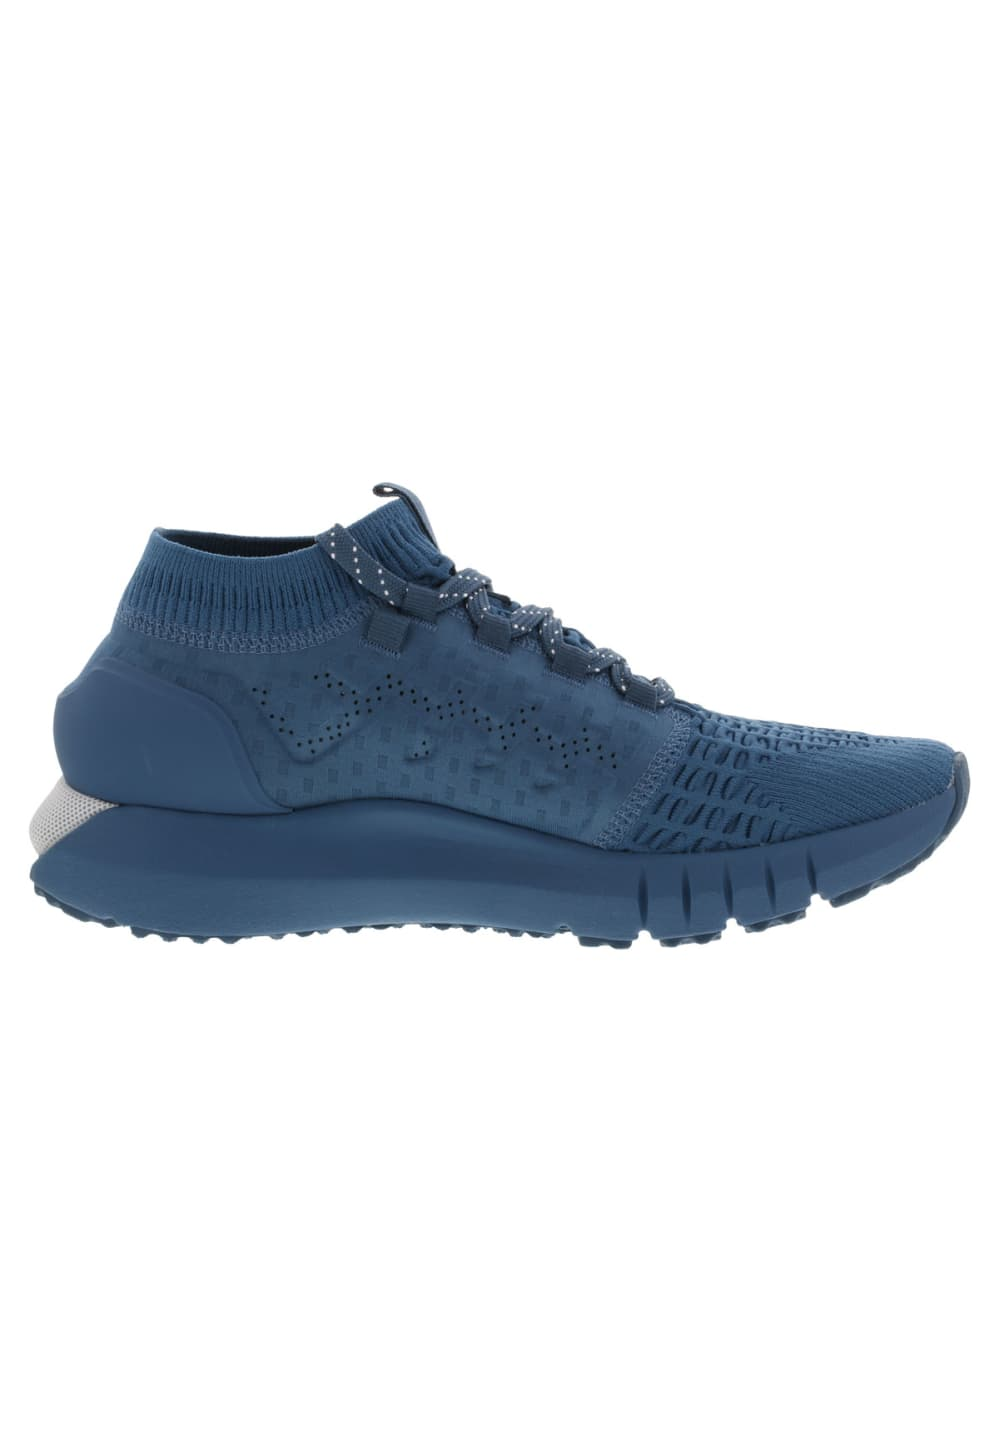 super popular 53e52 e95d1 Under Armour HOVR Phantom NC - Running shoes for Men - Blue